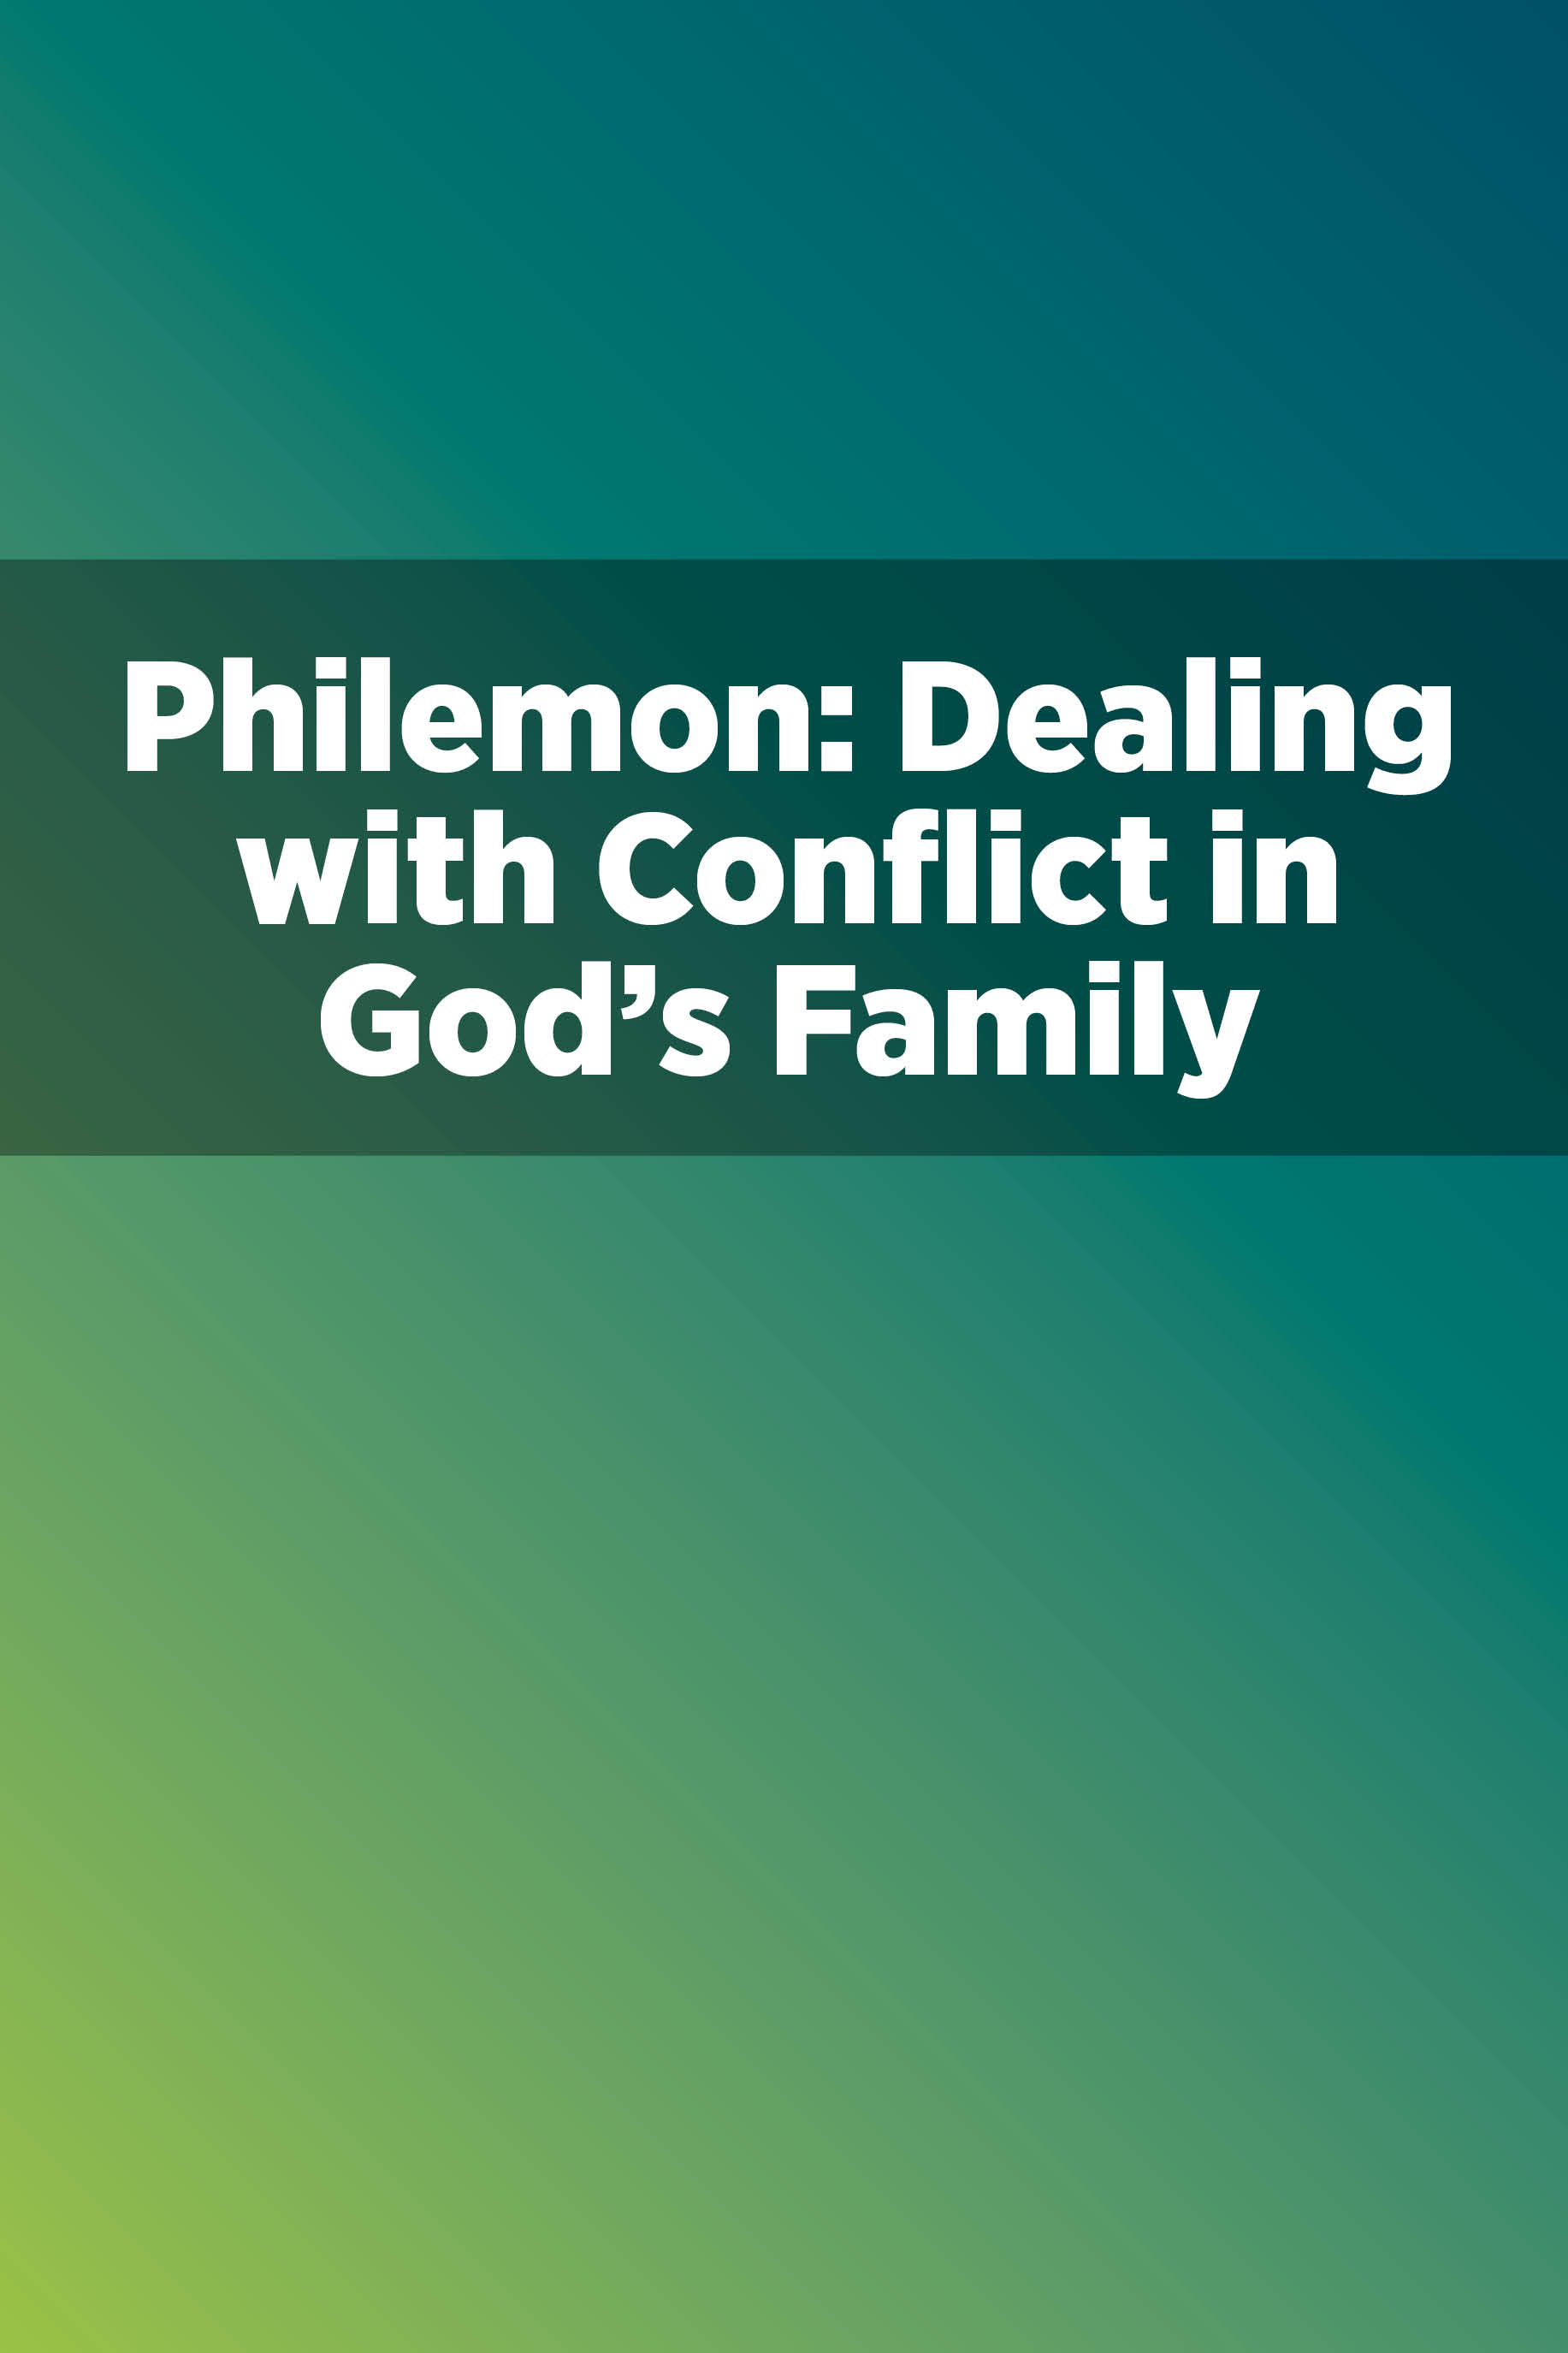 Philemon: Dealing with Conflict in God's Family